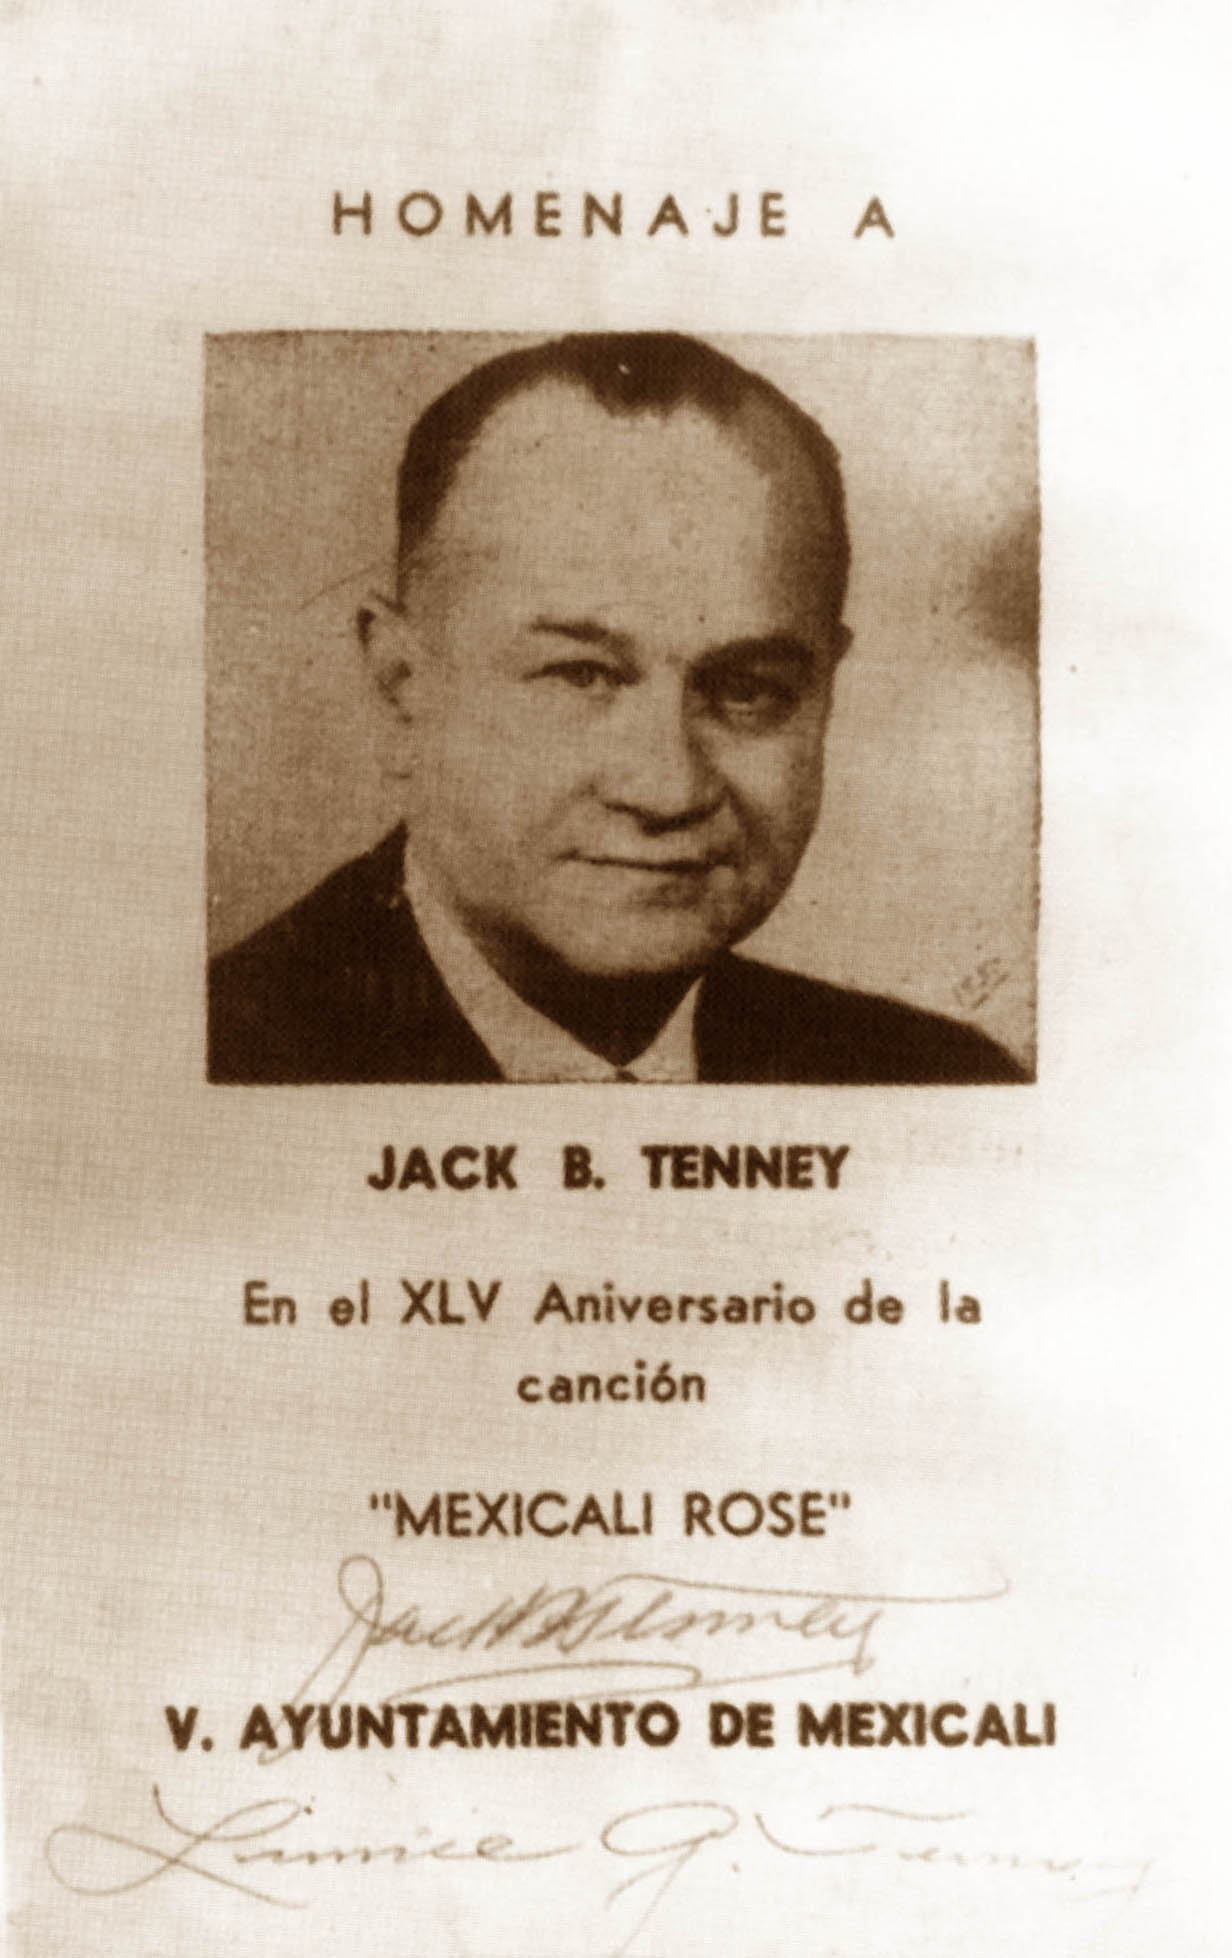 Jack B. Tenney - PIMSA Industrial Parks in Mexico 2